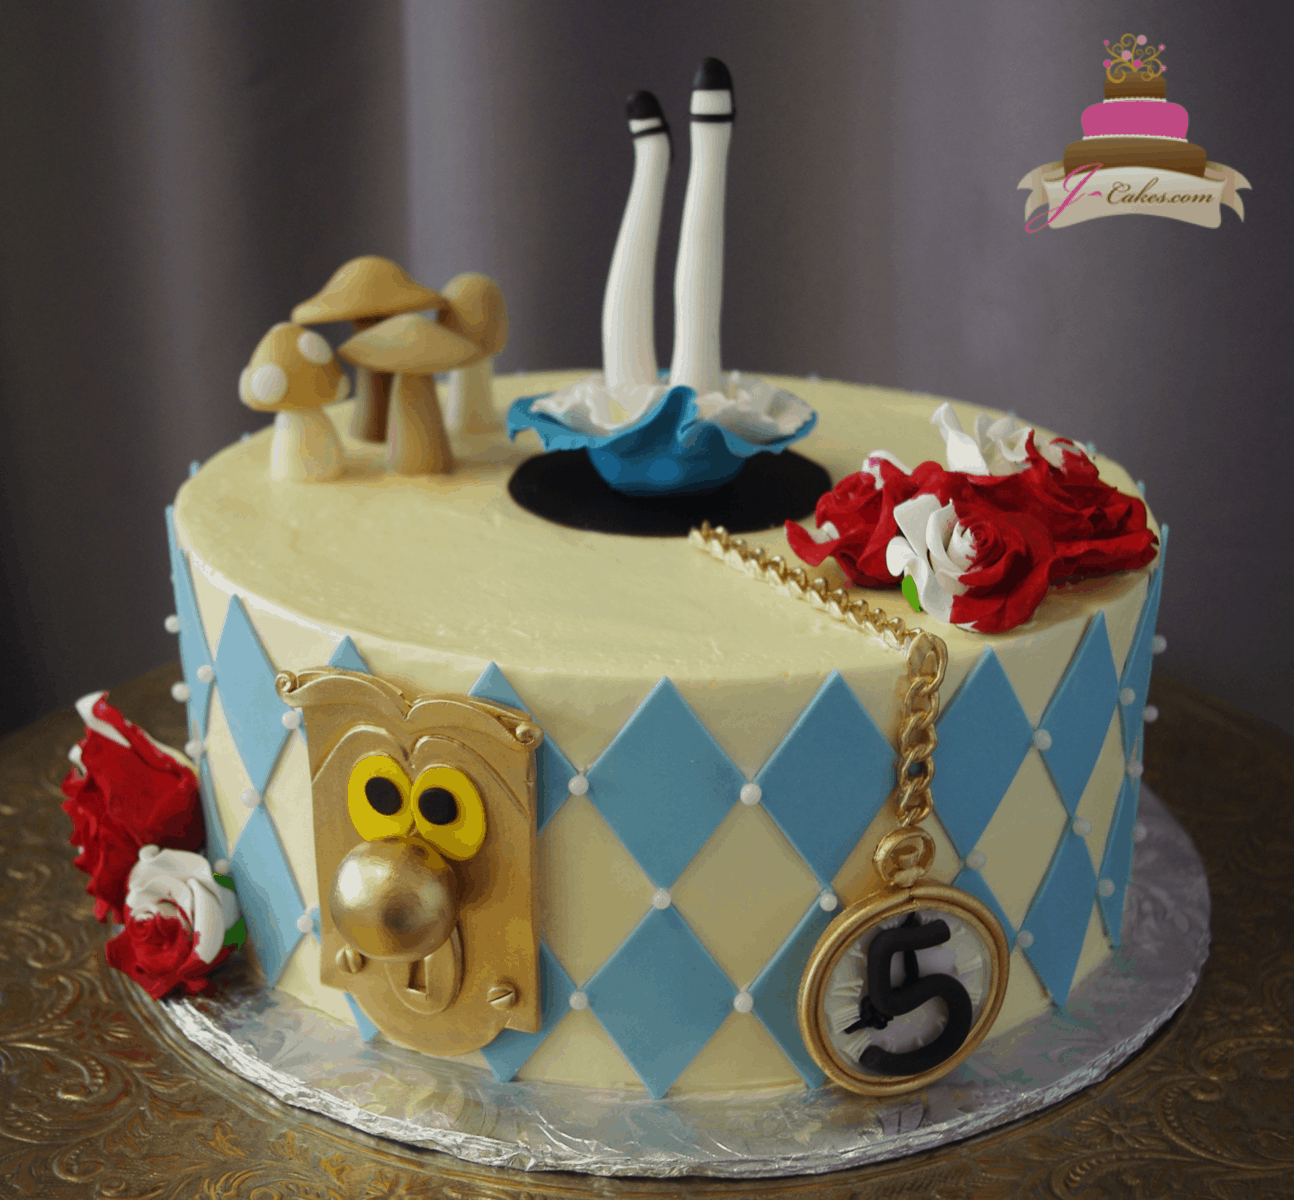 (543) Alice in Wonderland Cake